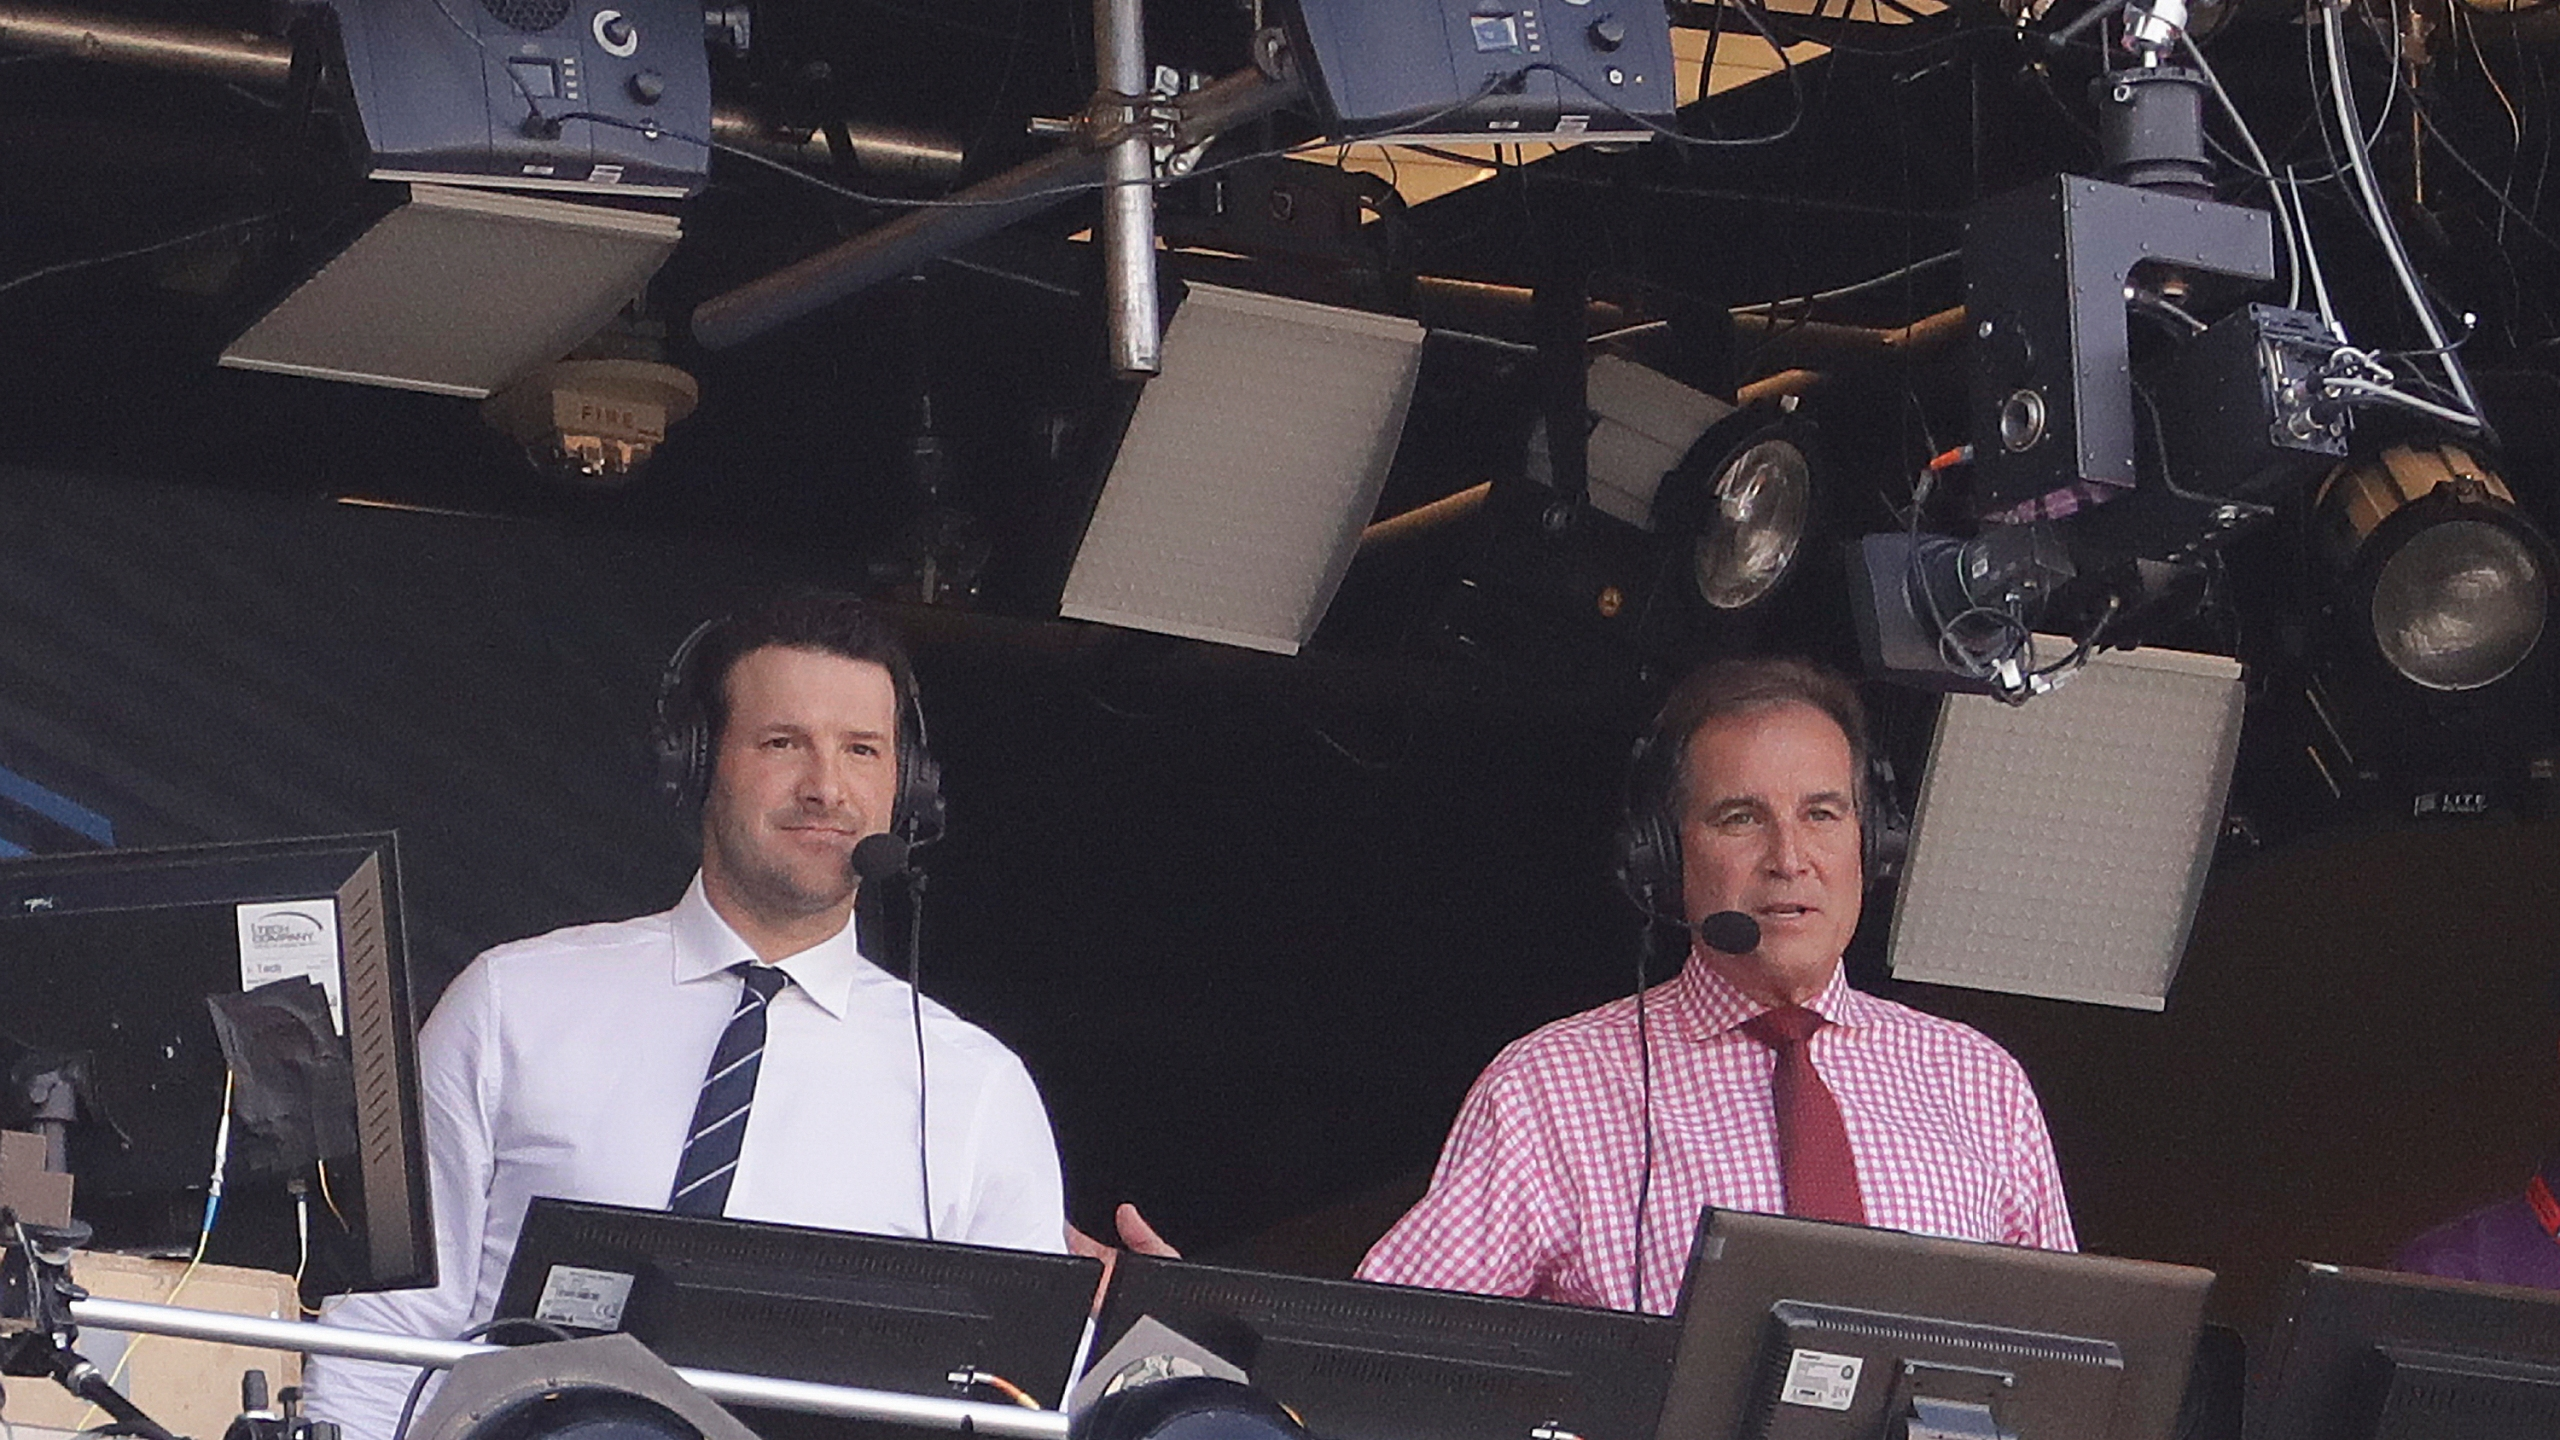 In this Sept. 24, 2017, file photo, Tony Romo and Jim Nantz work in the broadcast booth before an NFL football game between the Green Bay Packers and the Cincinnati Bengals in Green Bay, Wis. Nantz and Romo were inseparable when CBS broadcast the Super Bowl two years ago. Next week, they won't see each other until they are in the broadcast booth a couple hours prior to kickoff. Keeping announcers separated until game day has been standard practice this season due to the Coronavirus pandemic. (AP Photo/Morry Gash, File)